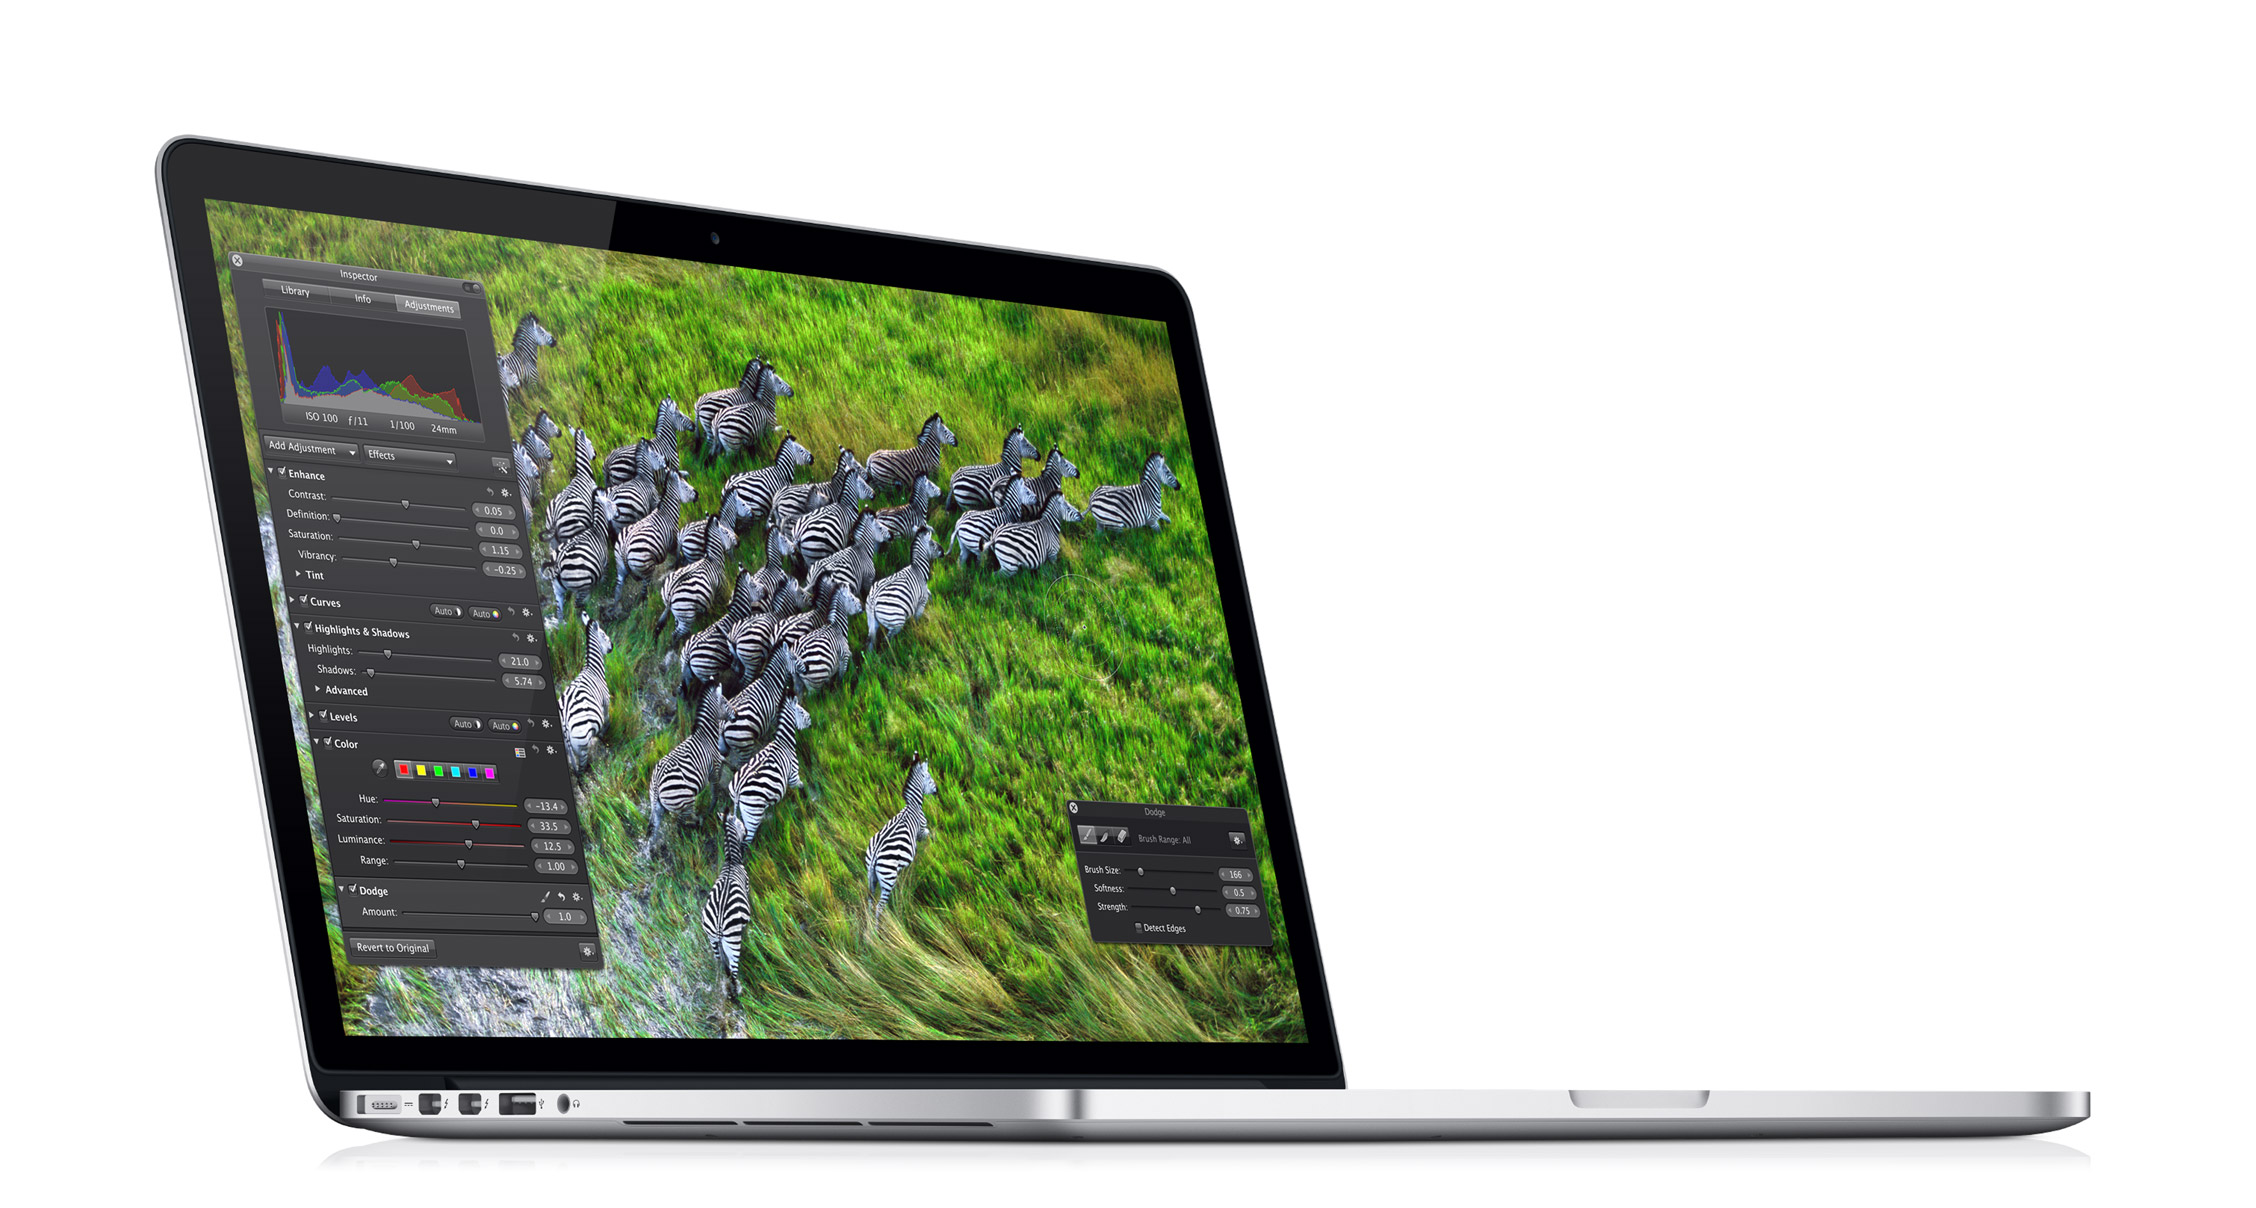 13-Inch Macbook Pro with Retina display?